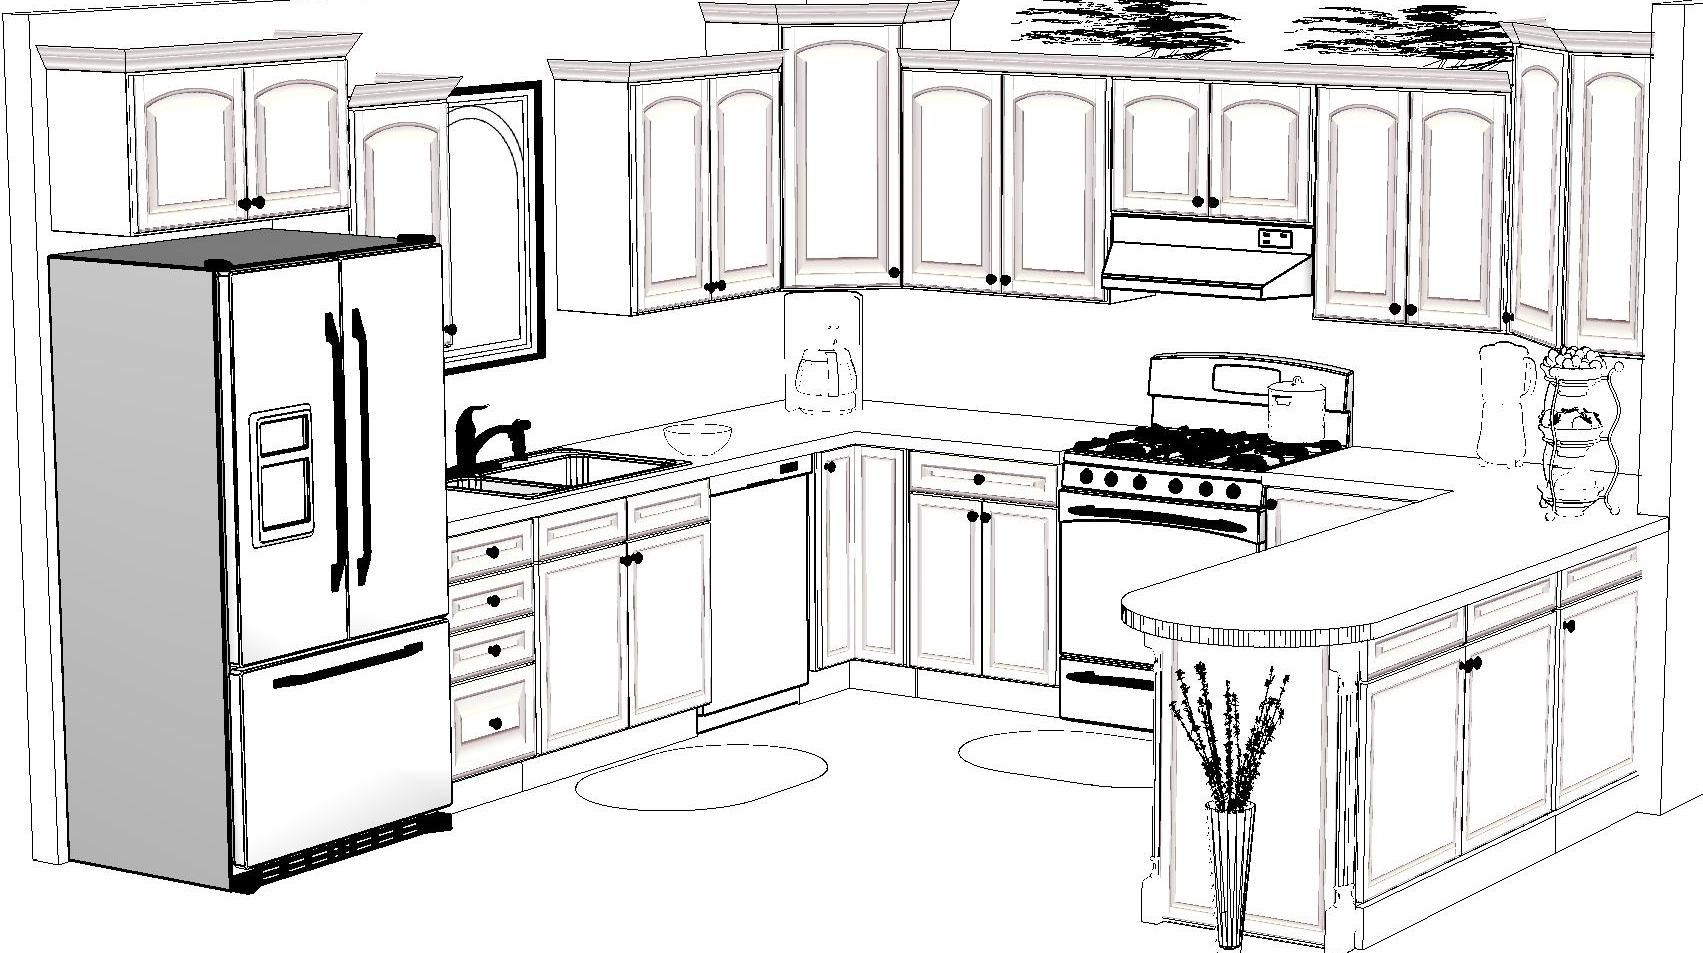 Kitchen Design Sketch Awesome 13988 Ic Mimarlik Pinterest Kitchen Design Sketches And